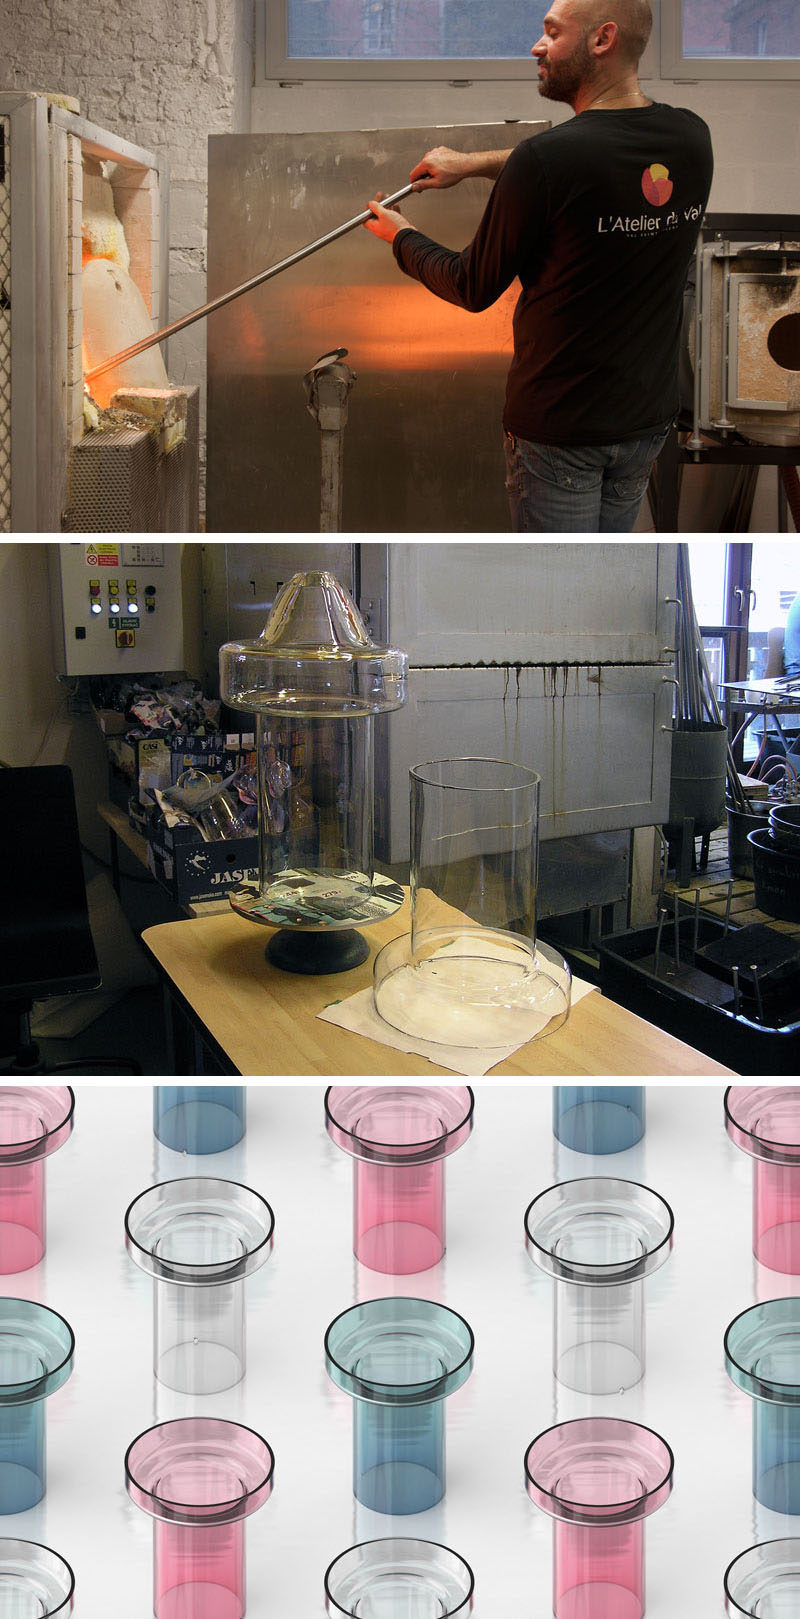 The prototypes and creative process of a new glass table lamp being designed.